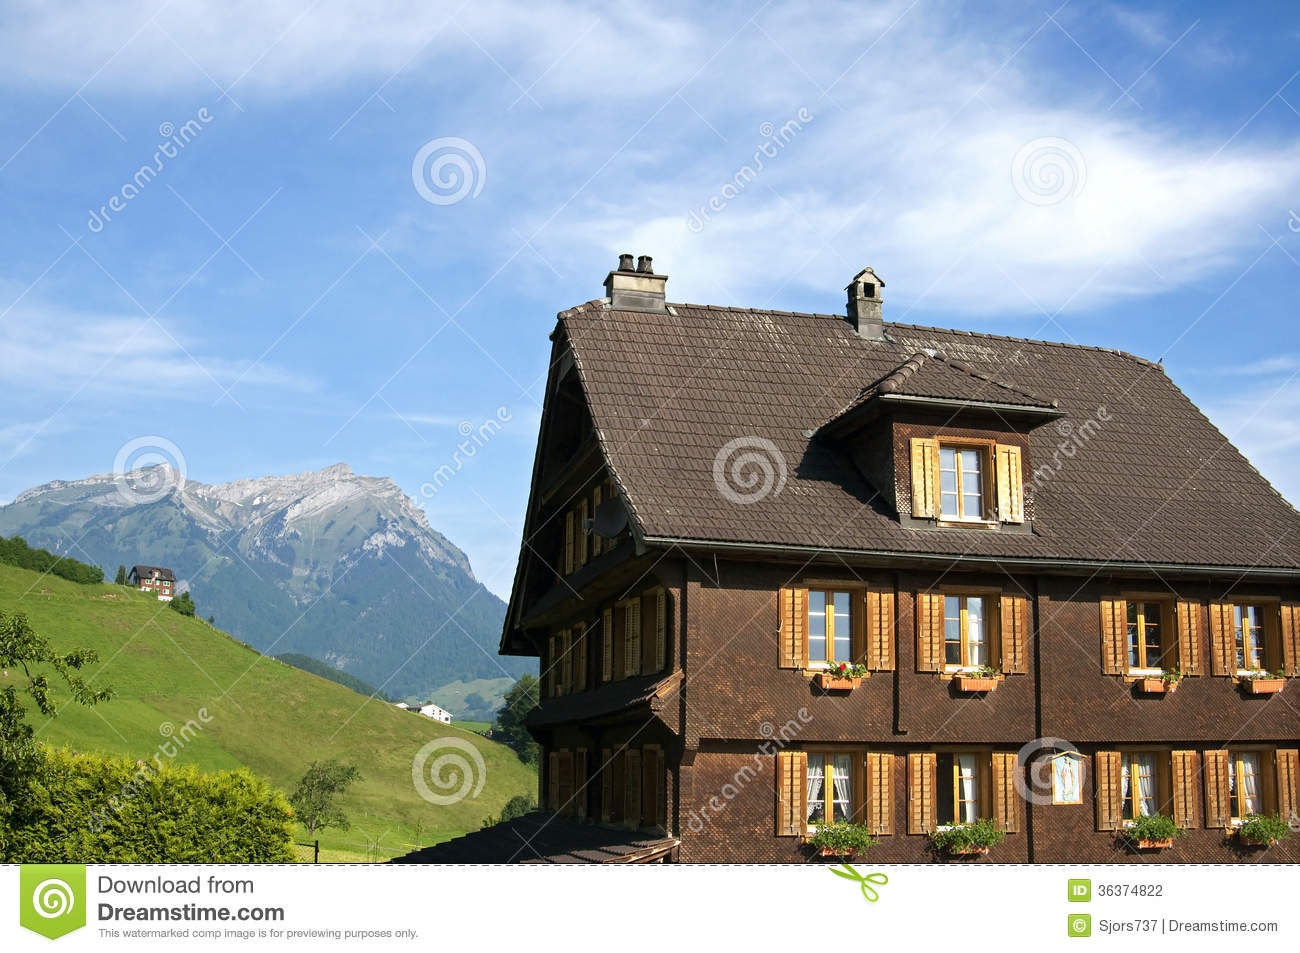 Swiss wooden house in alps mountain landscape stock for Panoramic view house plans